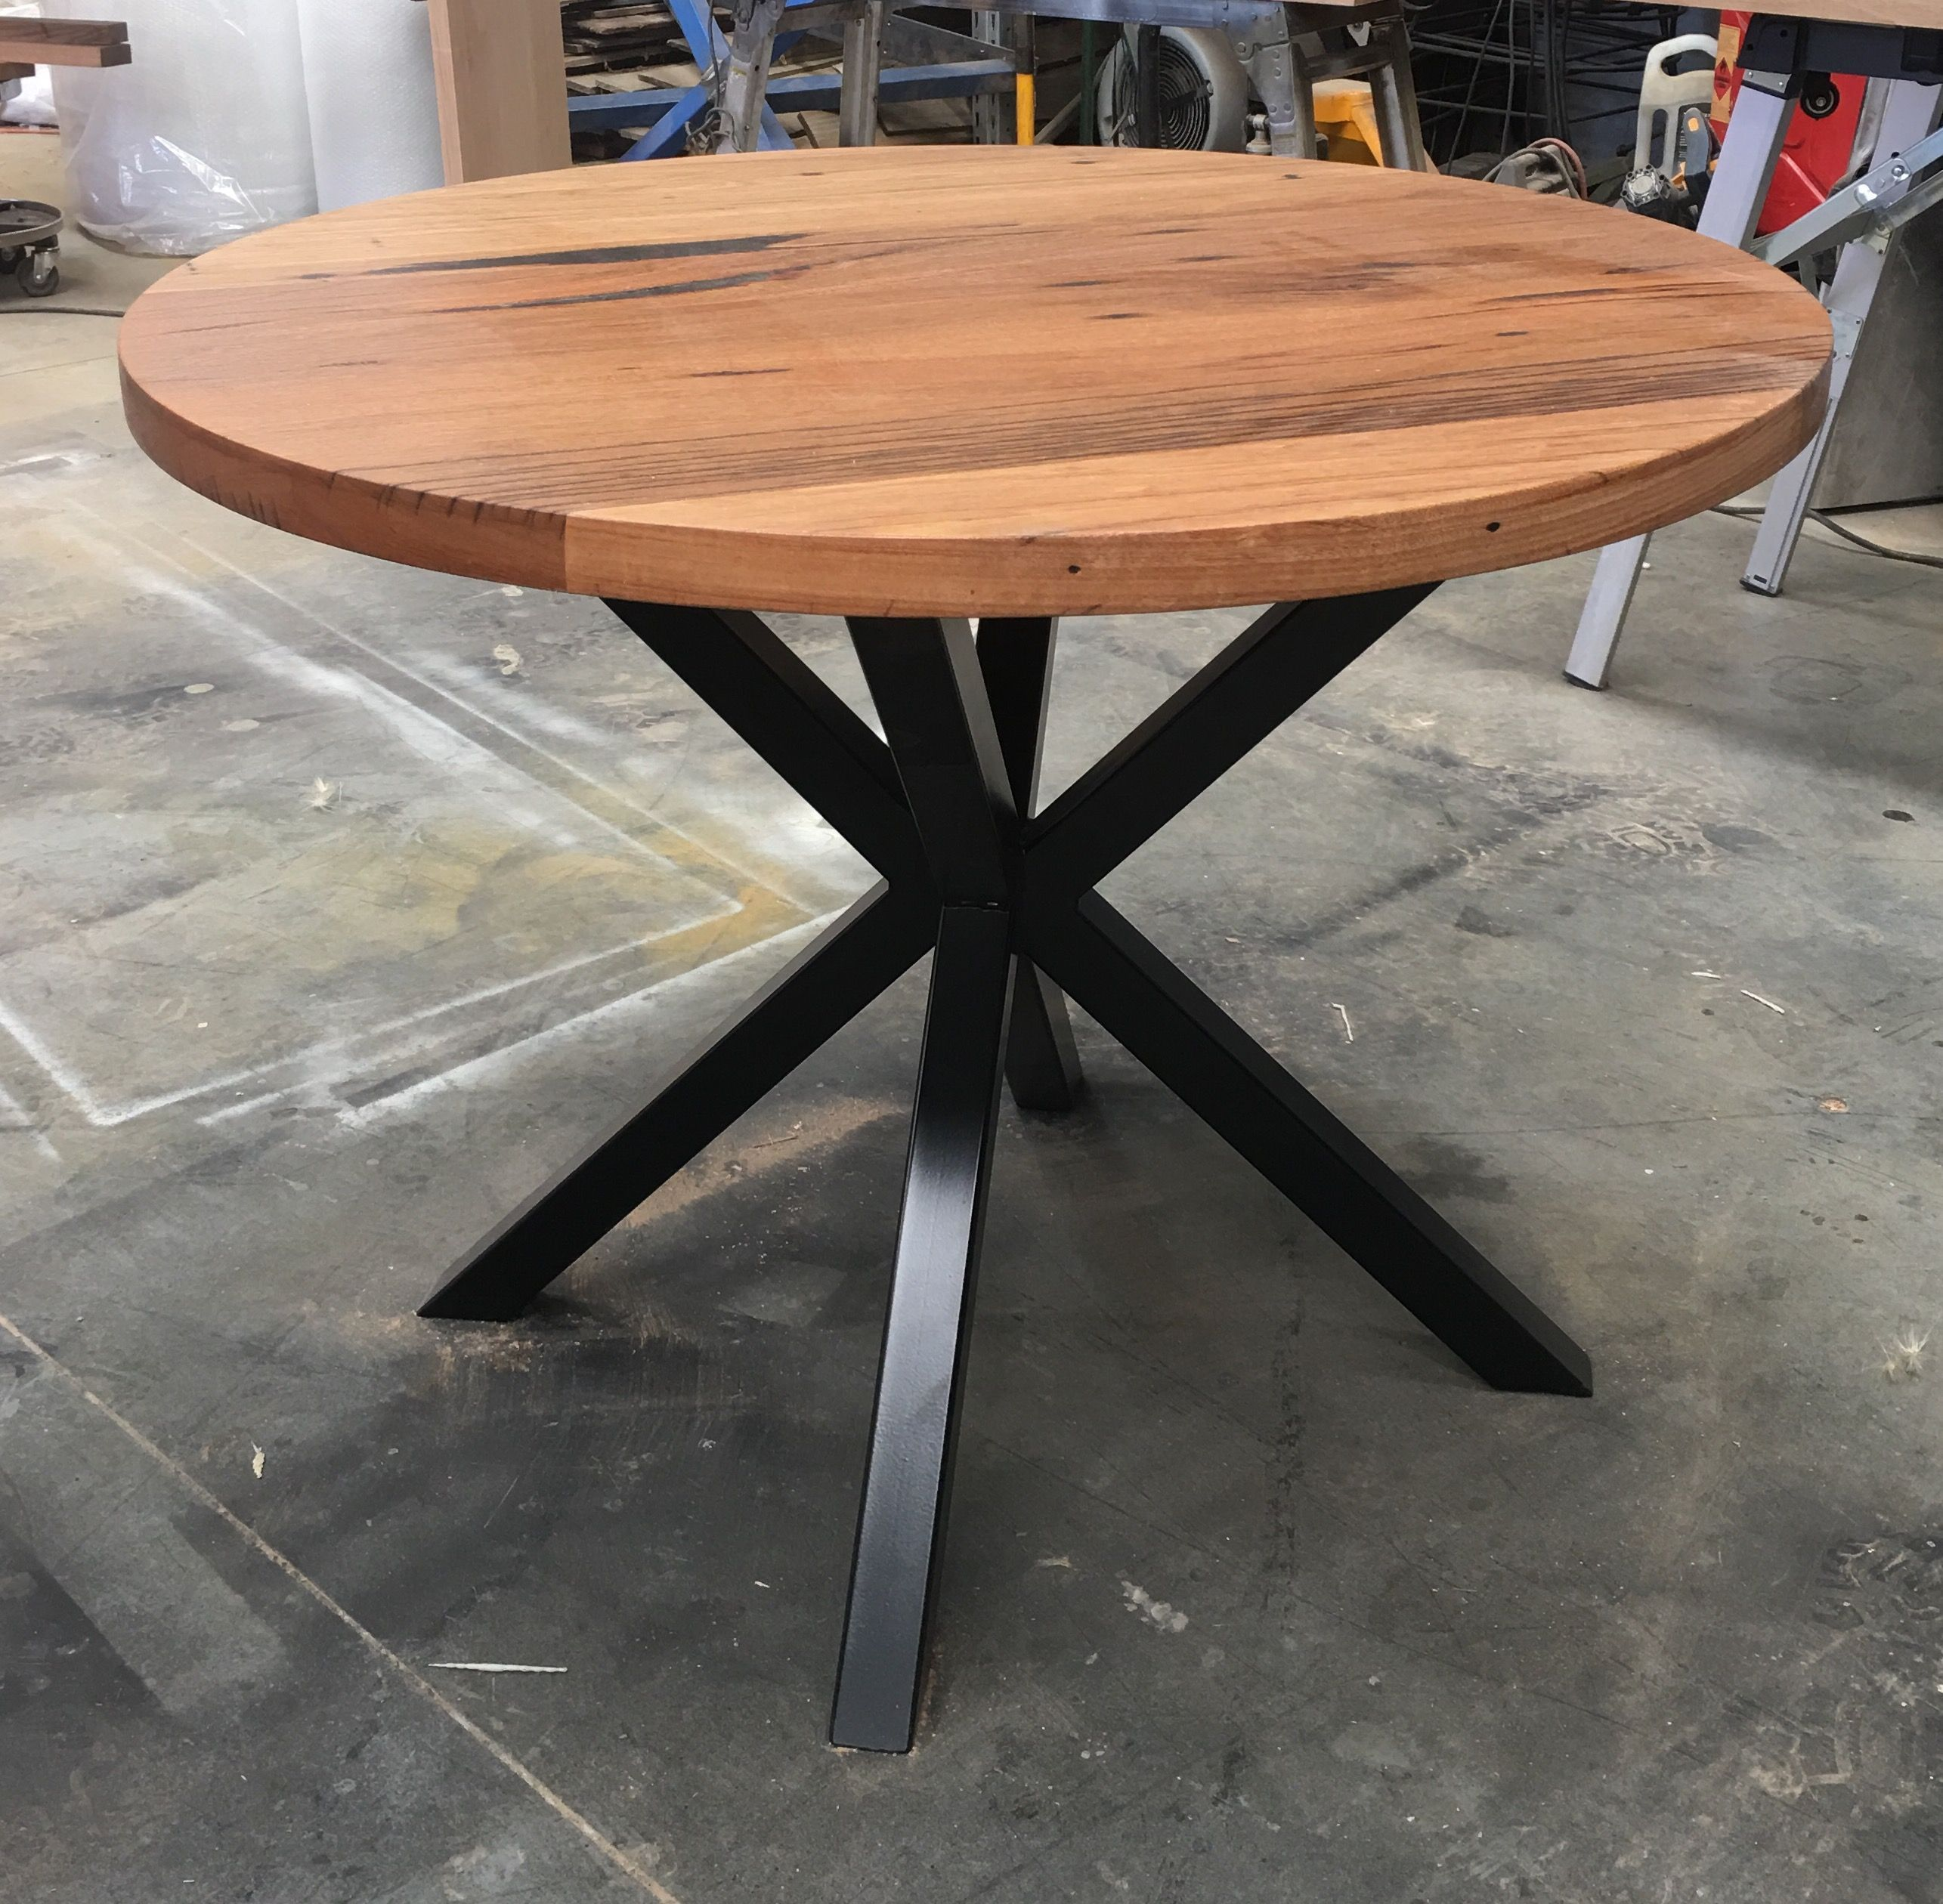 Kitchen Table Rounded Legskitchen Table Rounded Legs Ever End Up In The Kitchen At A House Metal Leg Dining Table Black Round Dining Table Round Dining Table